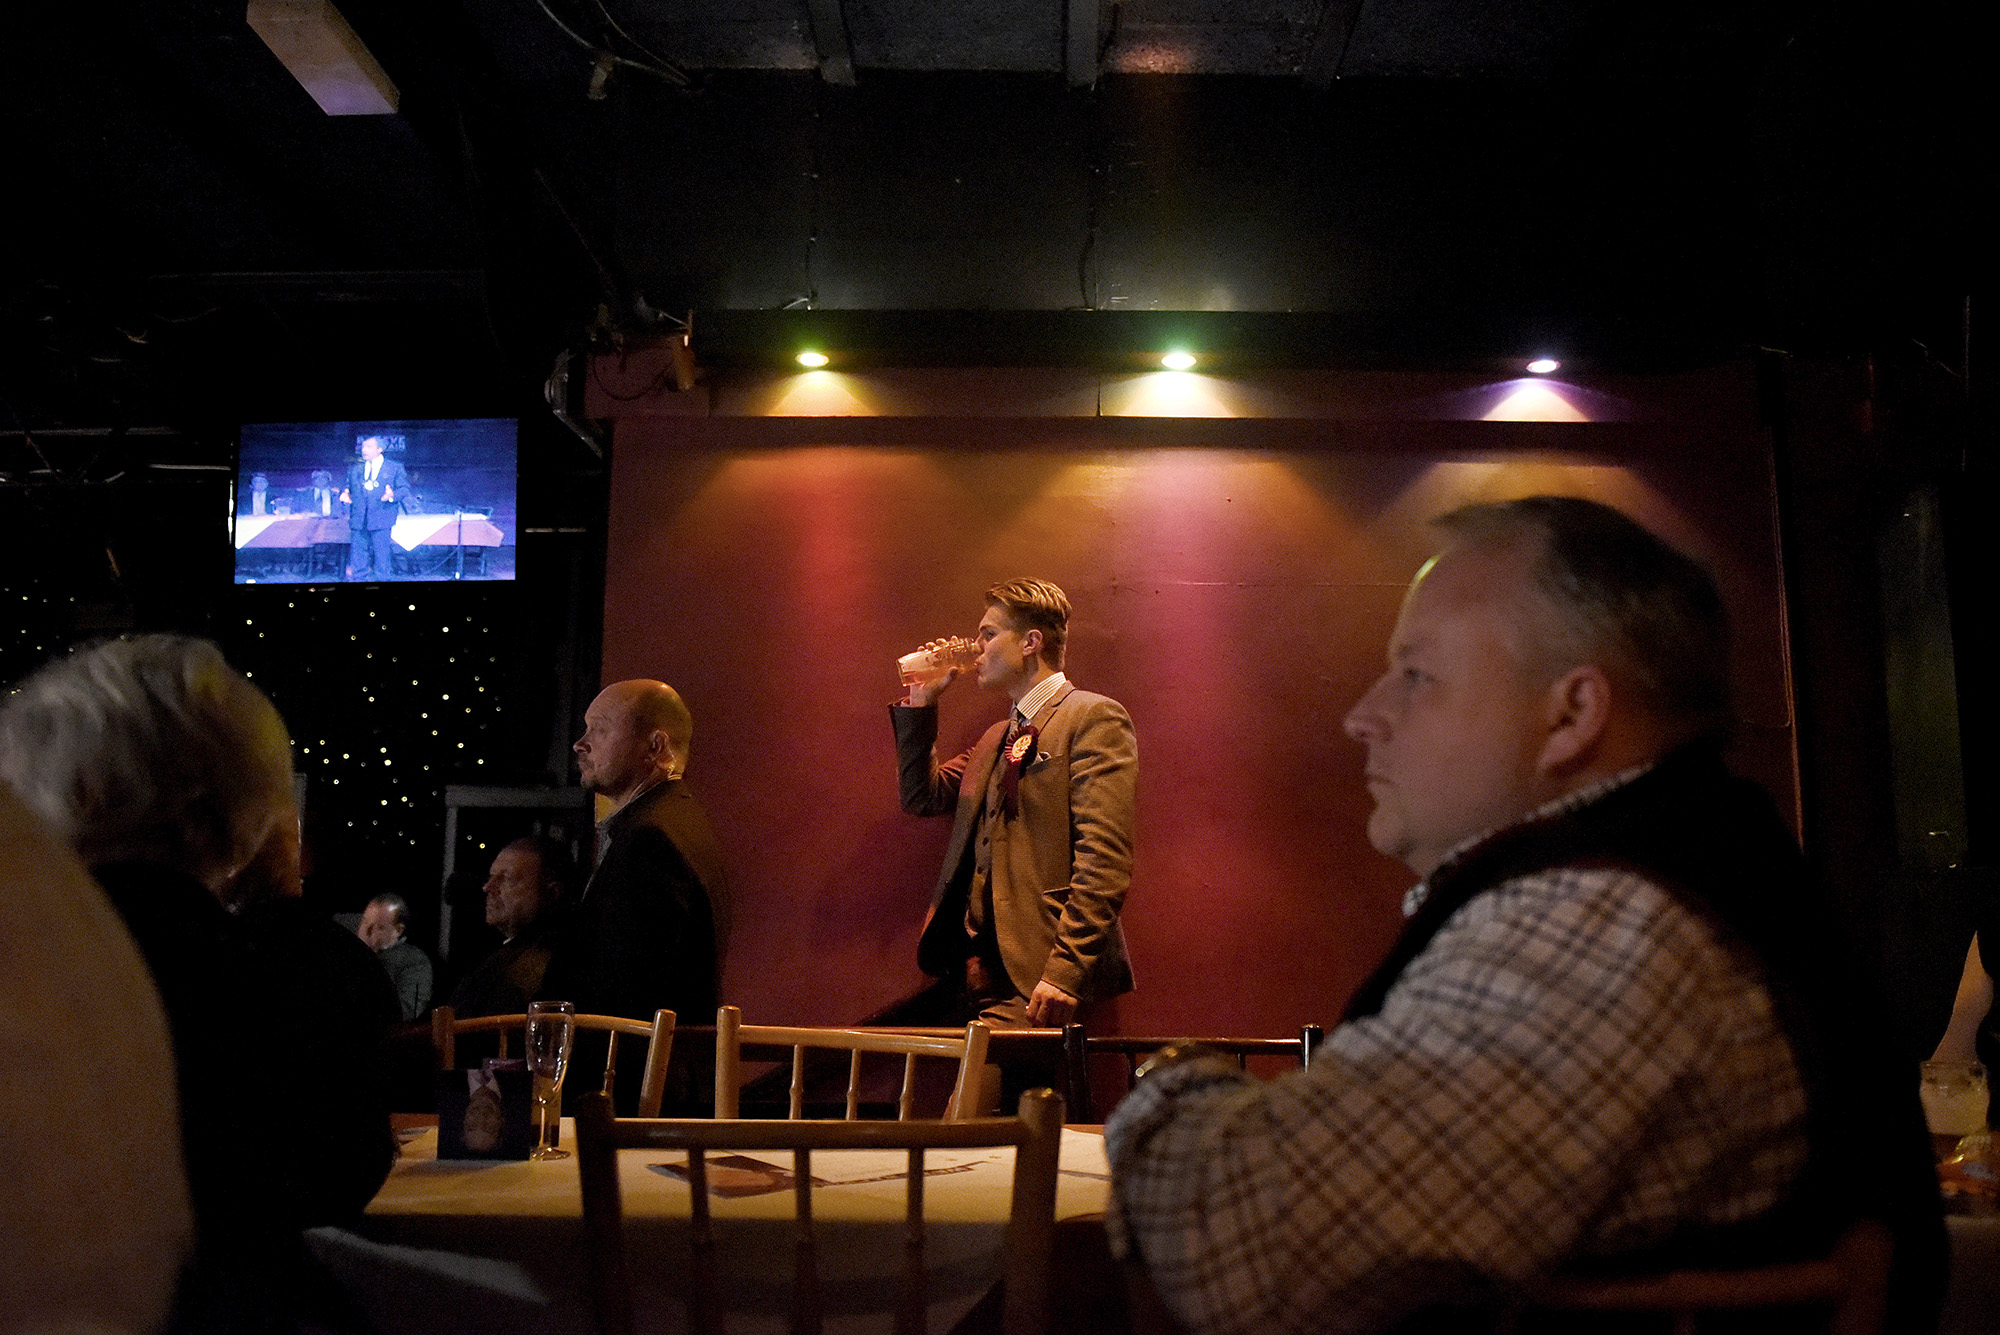 Audience during a public meeting, The Circus Tavern, Purfleet, Essex, April 13th 2015